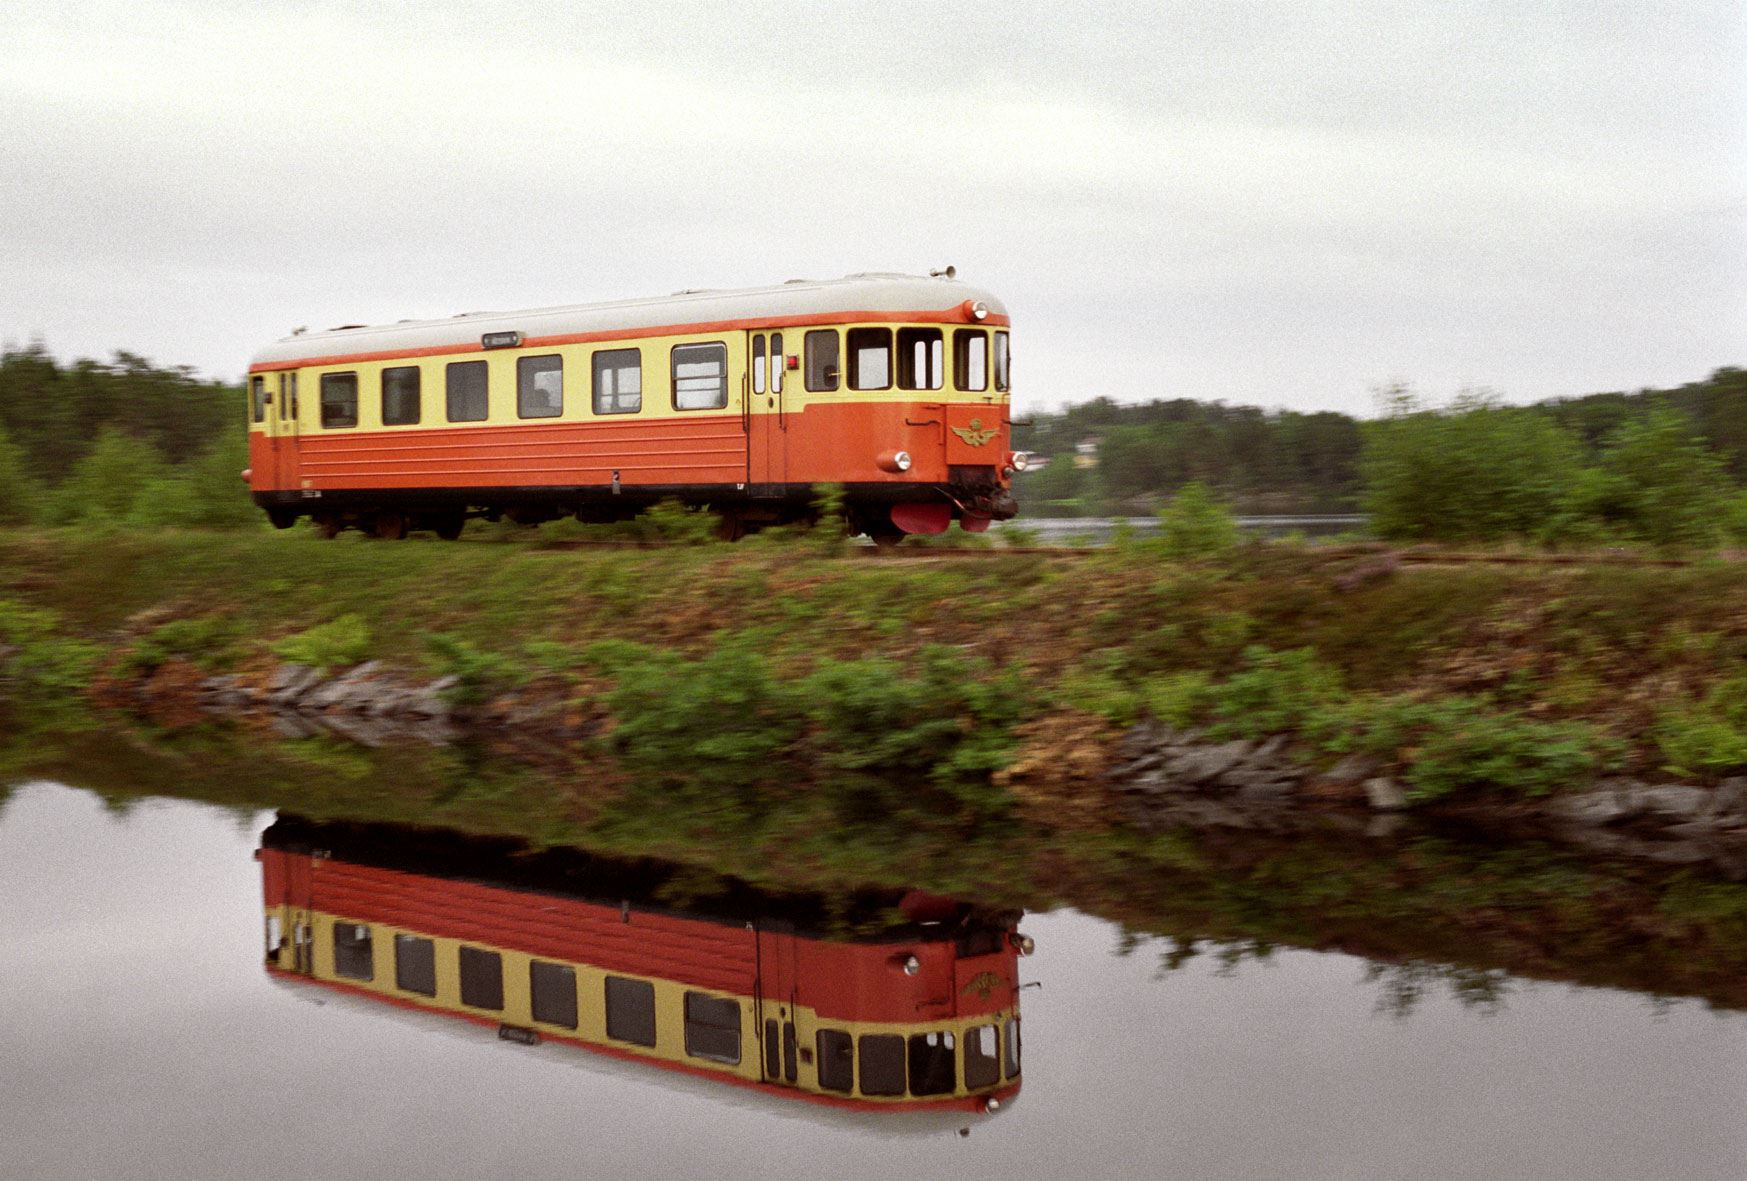 Narrow-gauge railway between Västervik and Hultsfred